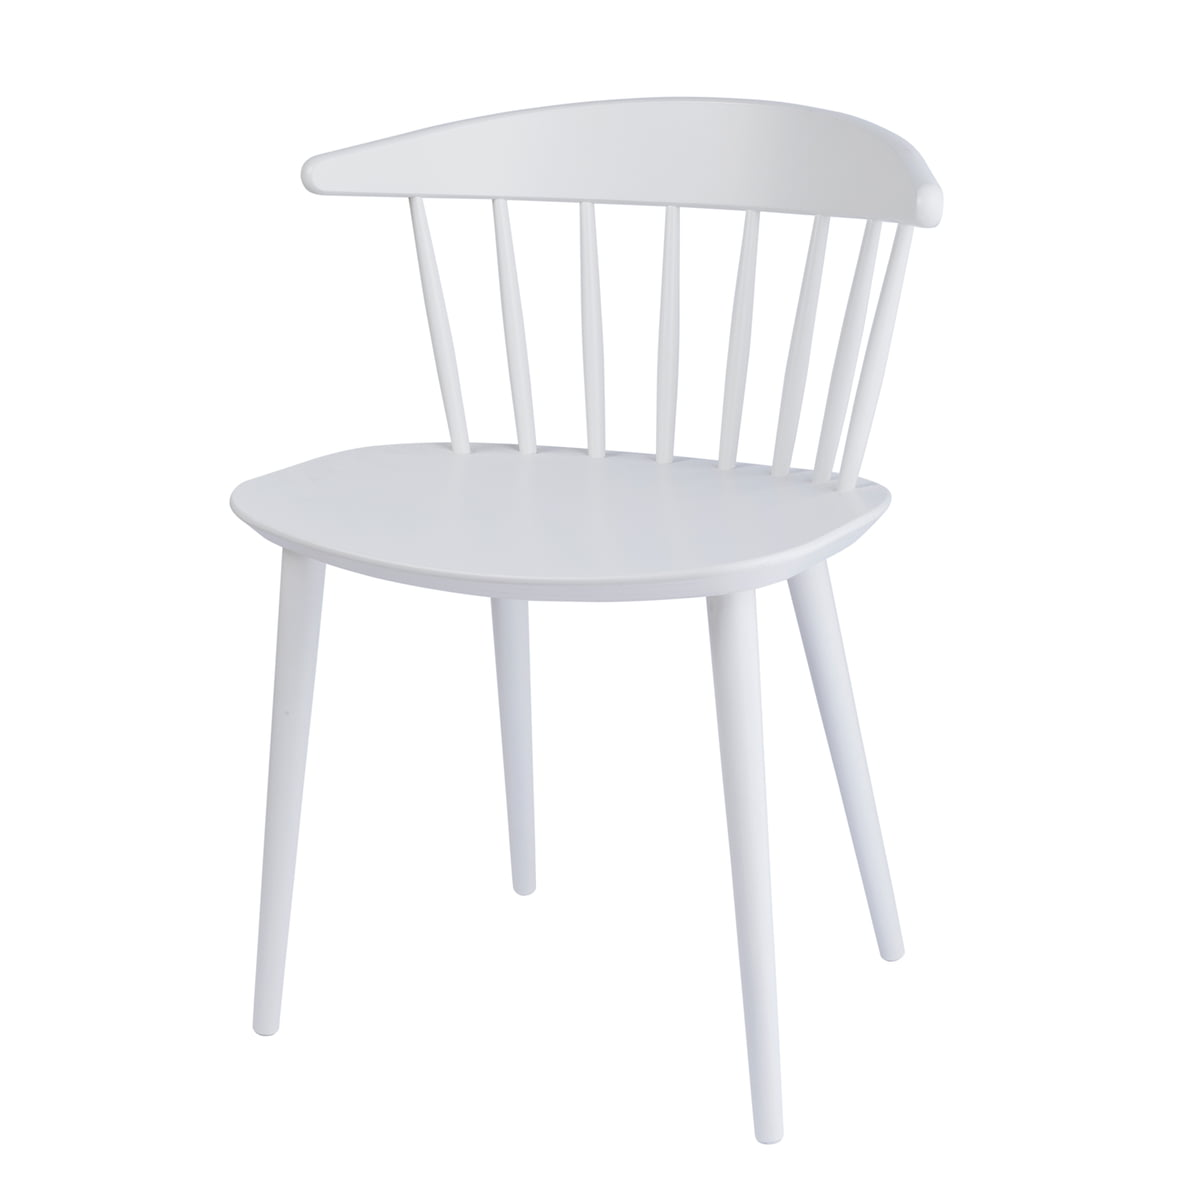 J104 Chair | Hay | Shop